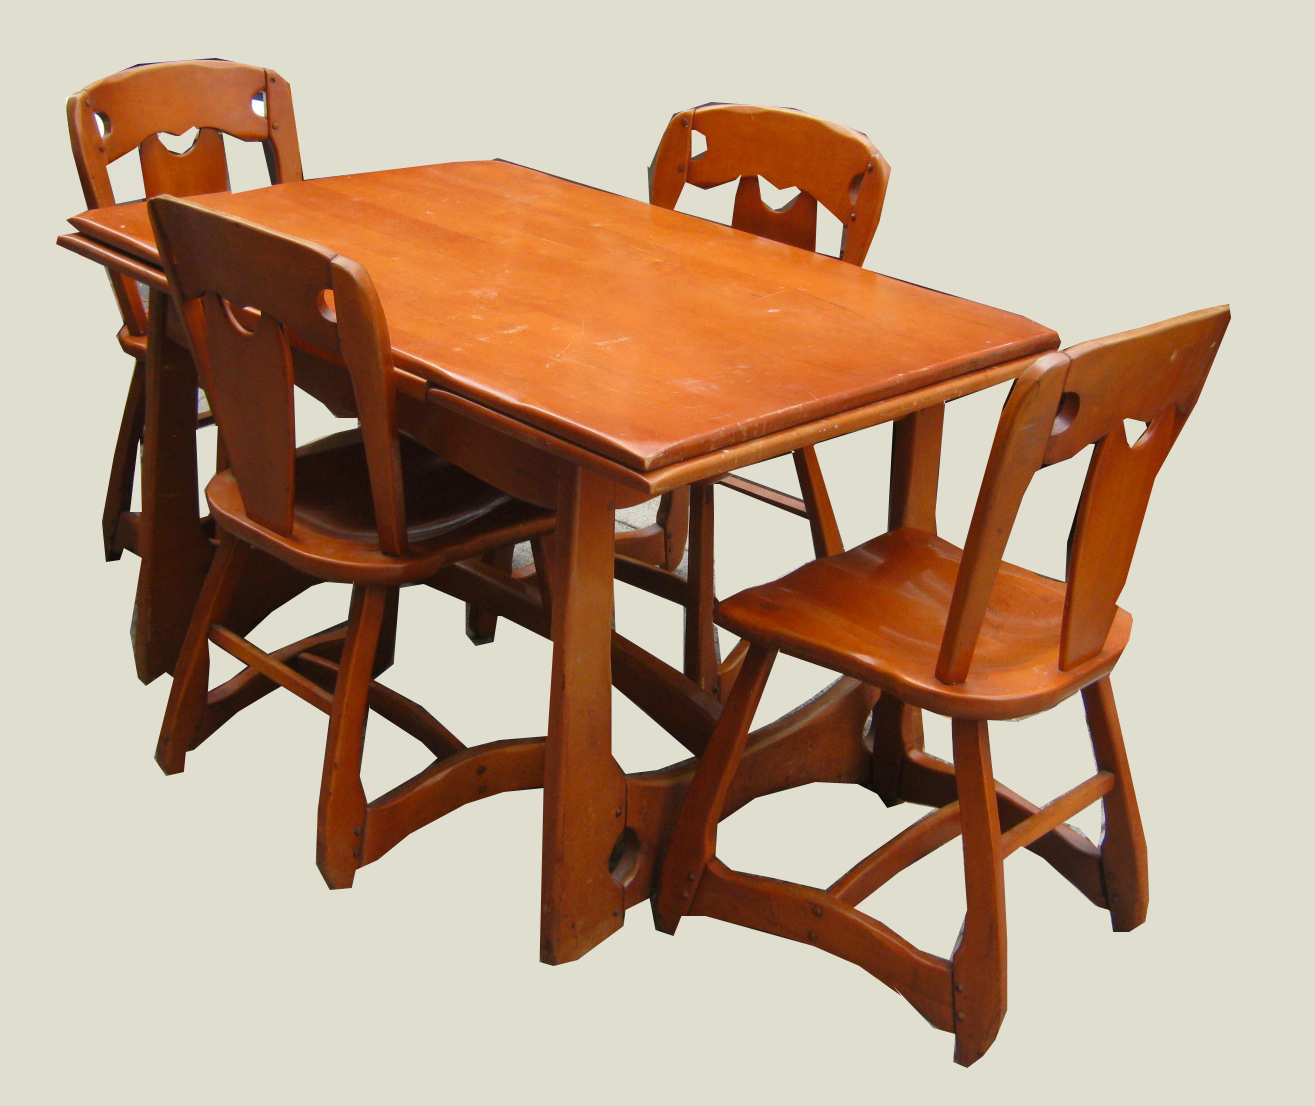 Uhuru furniture collectibles 1940 39 s rock maple dining for Dining room tables 1940s